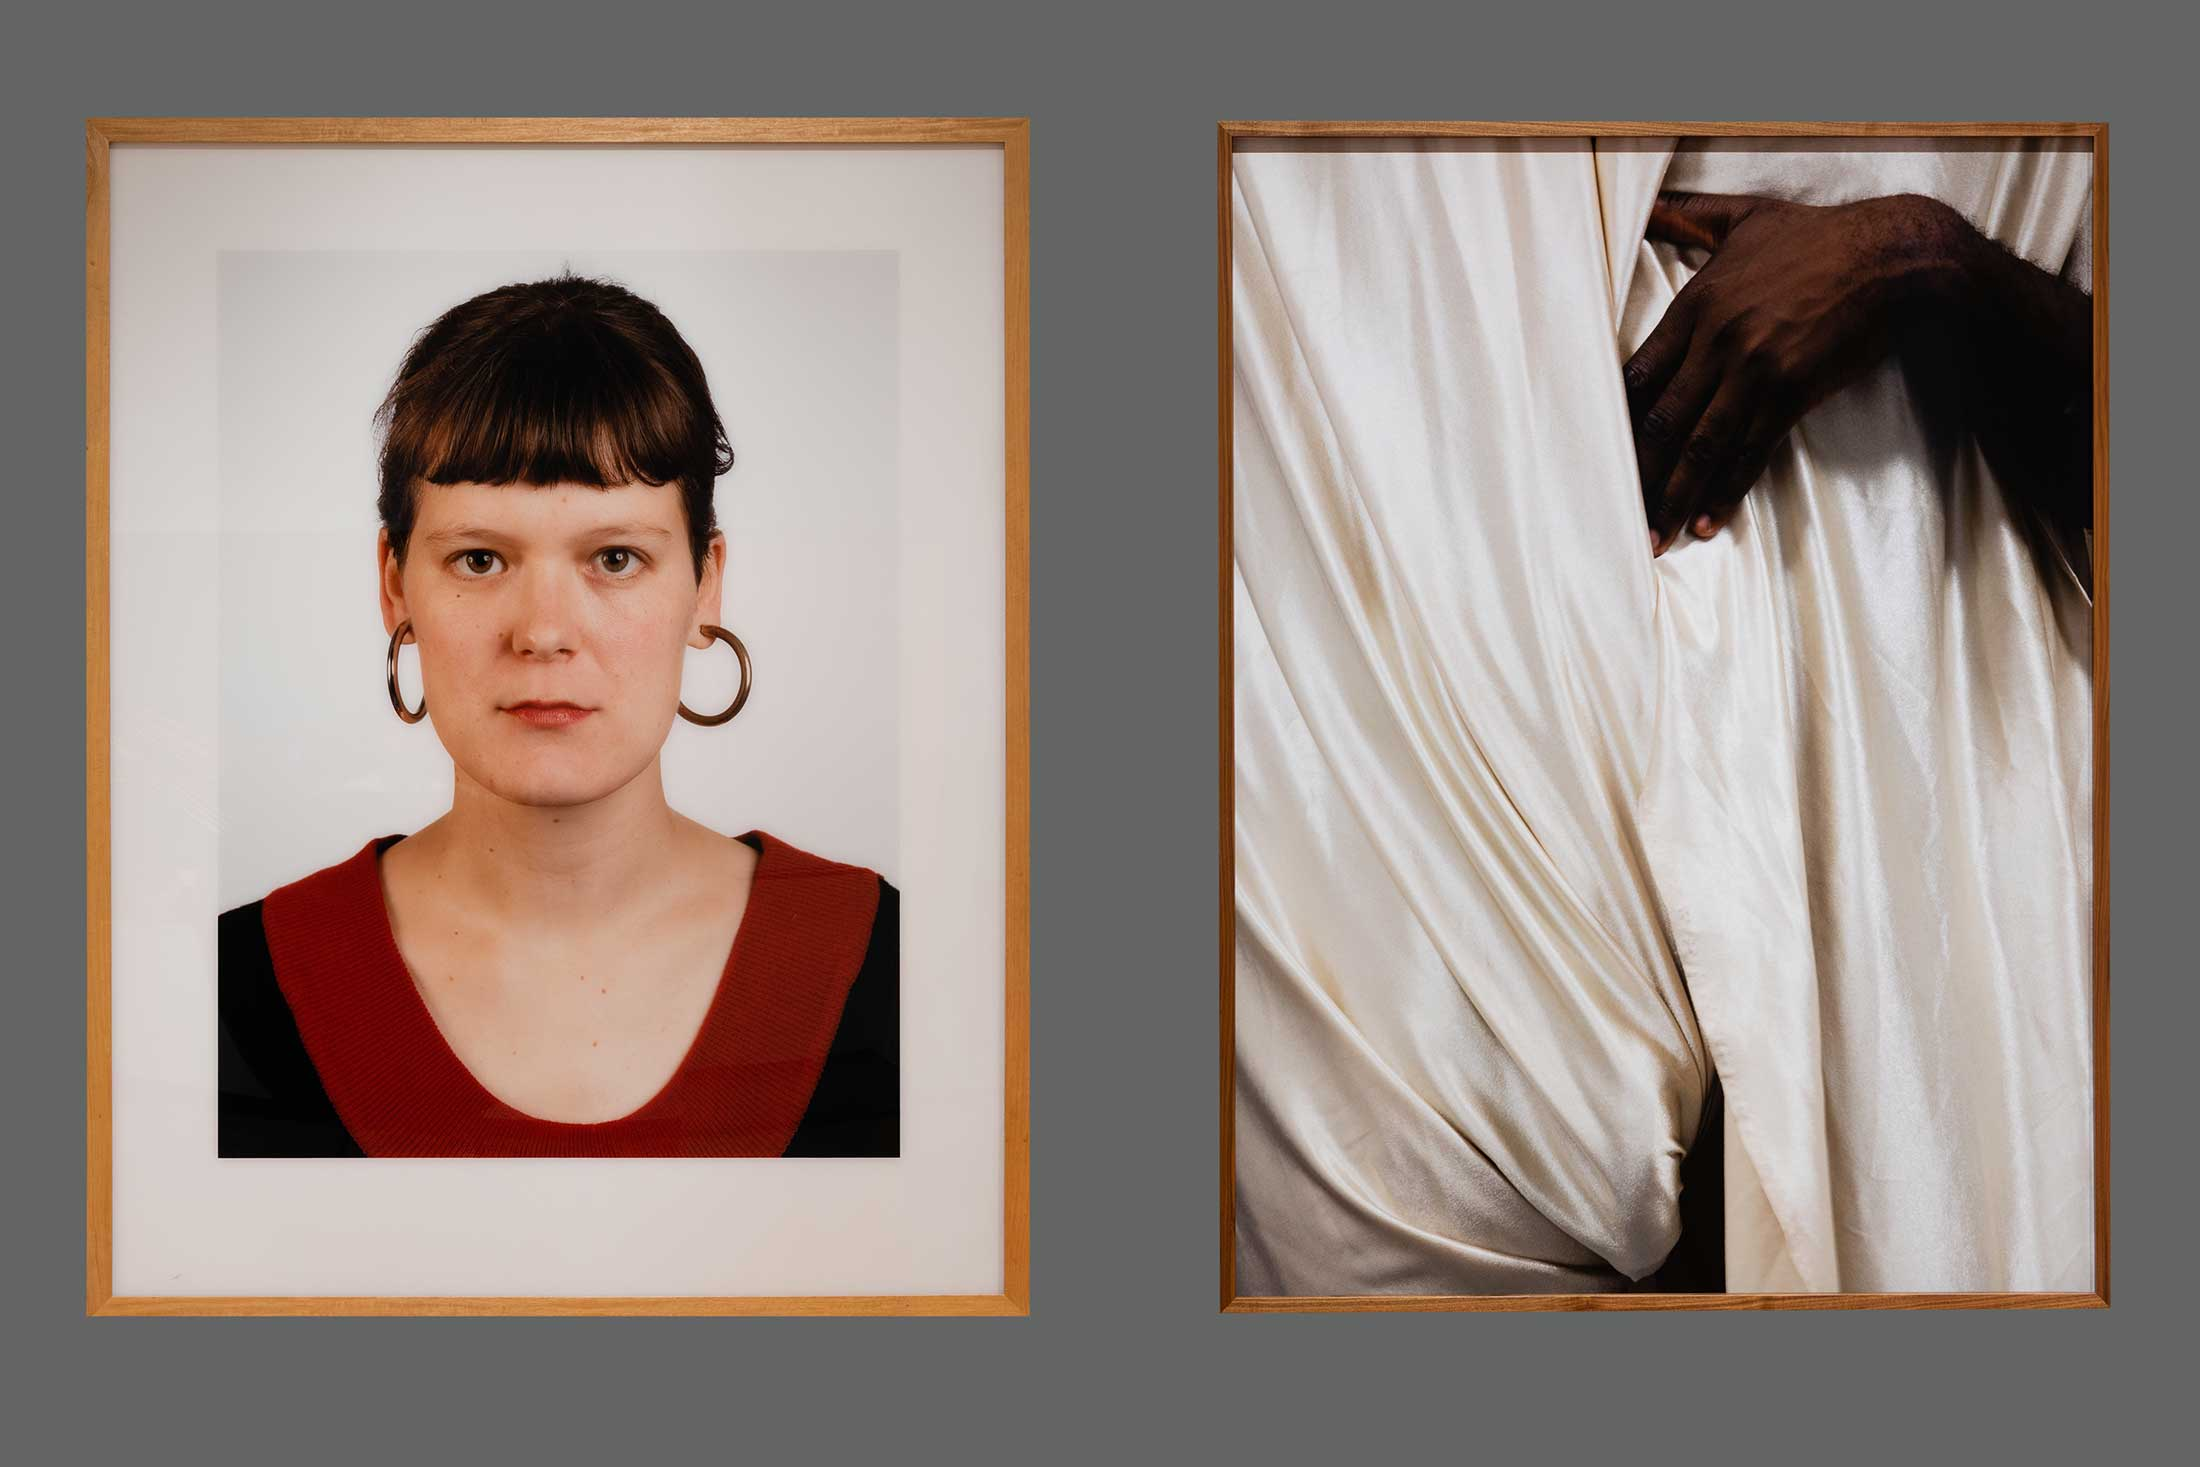 Left: Portrait (Elke Dende) by Thomas Ruff; Right: Draping by Paul Mpagi Sepuya